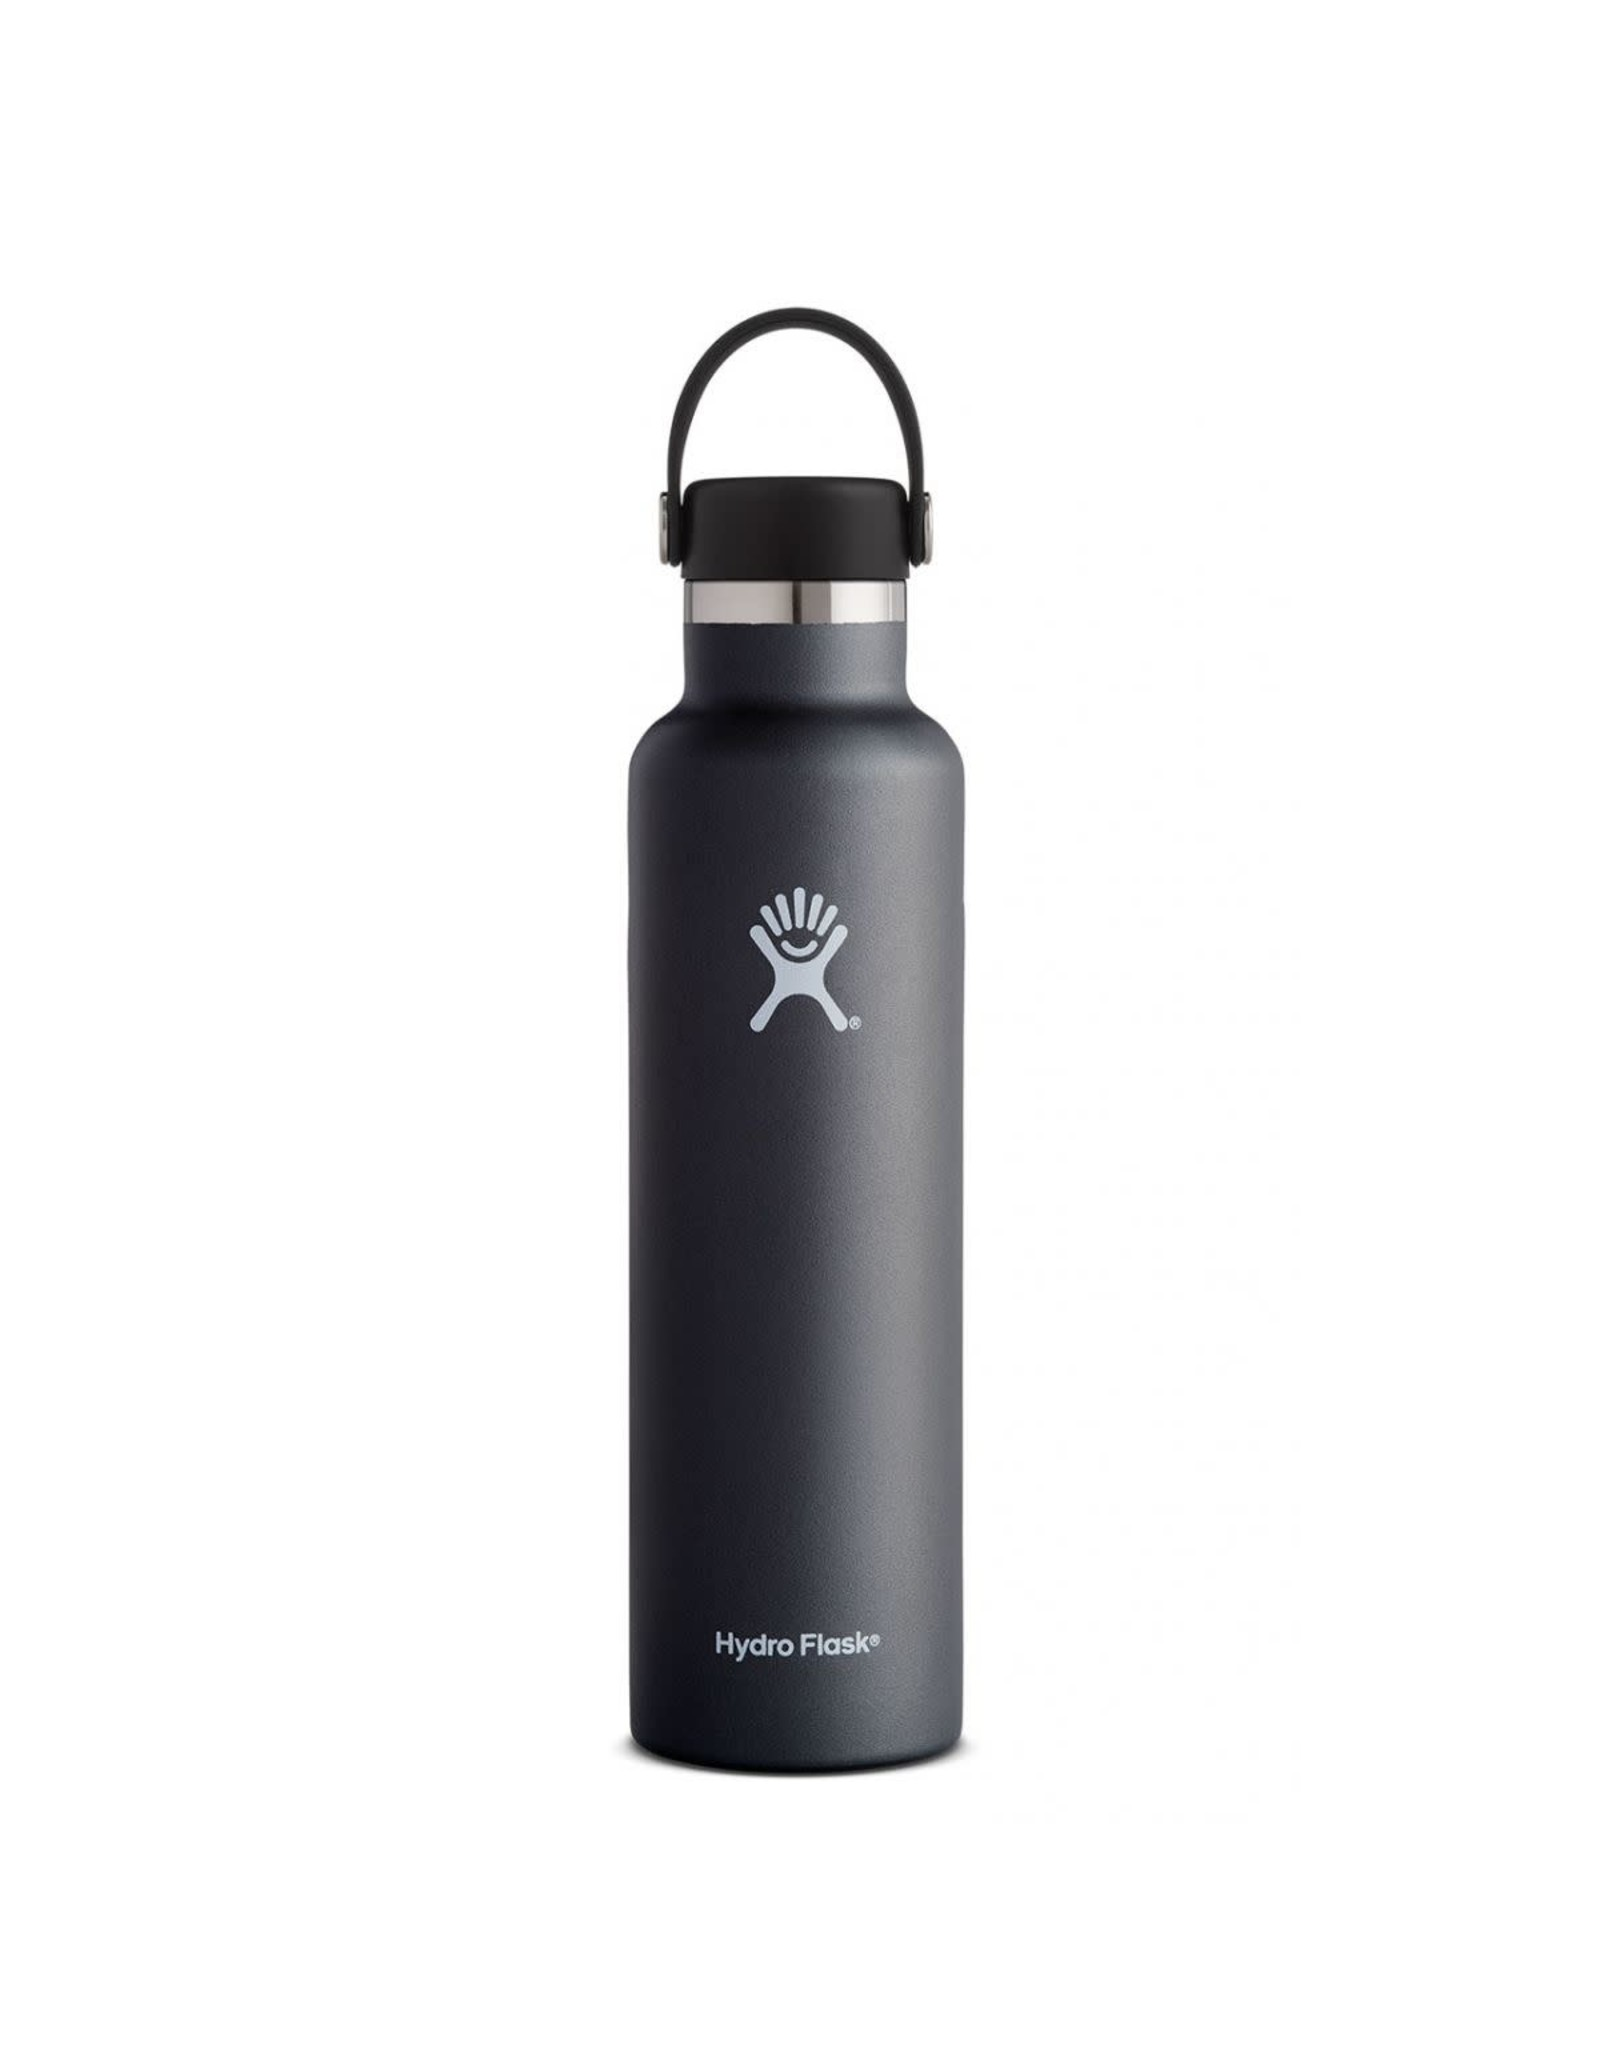 Hydro Flask Hydro Flask 24oz Standard Mouth with Flex Cap Black